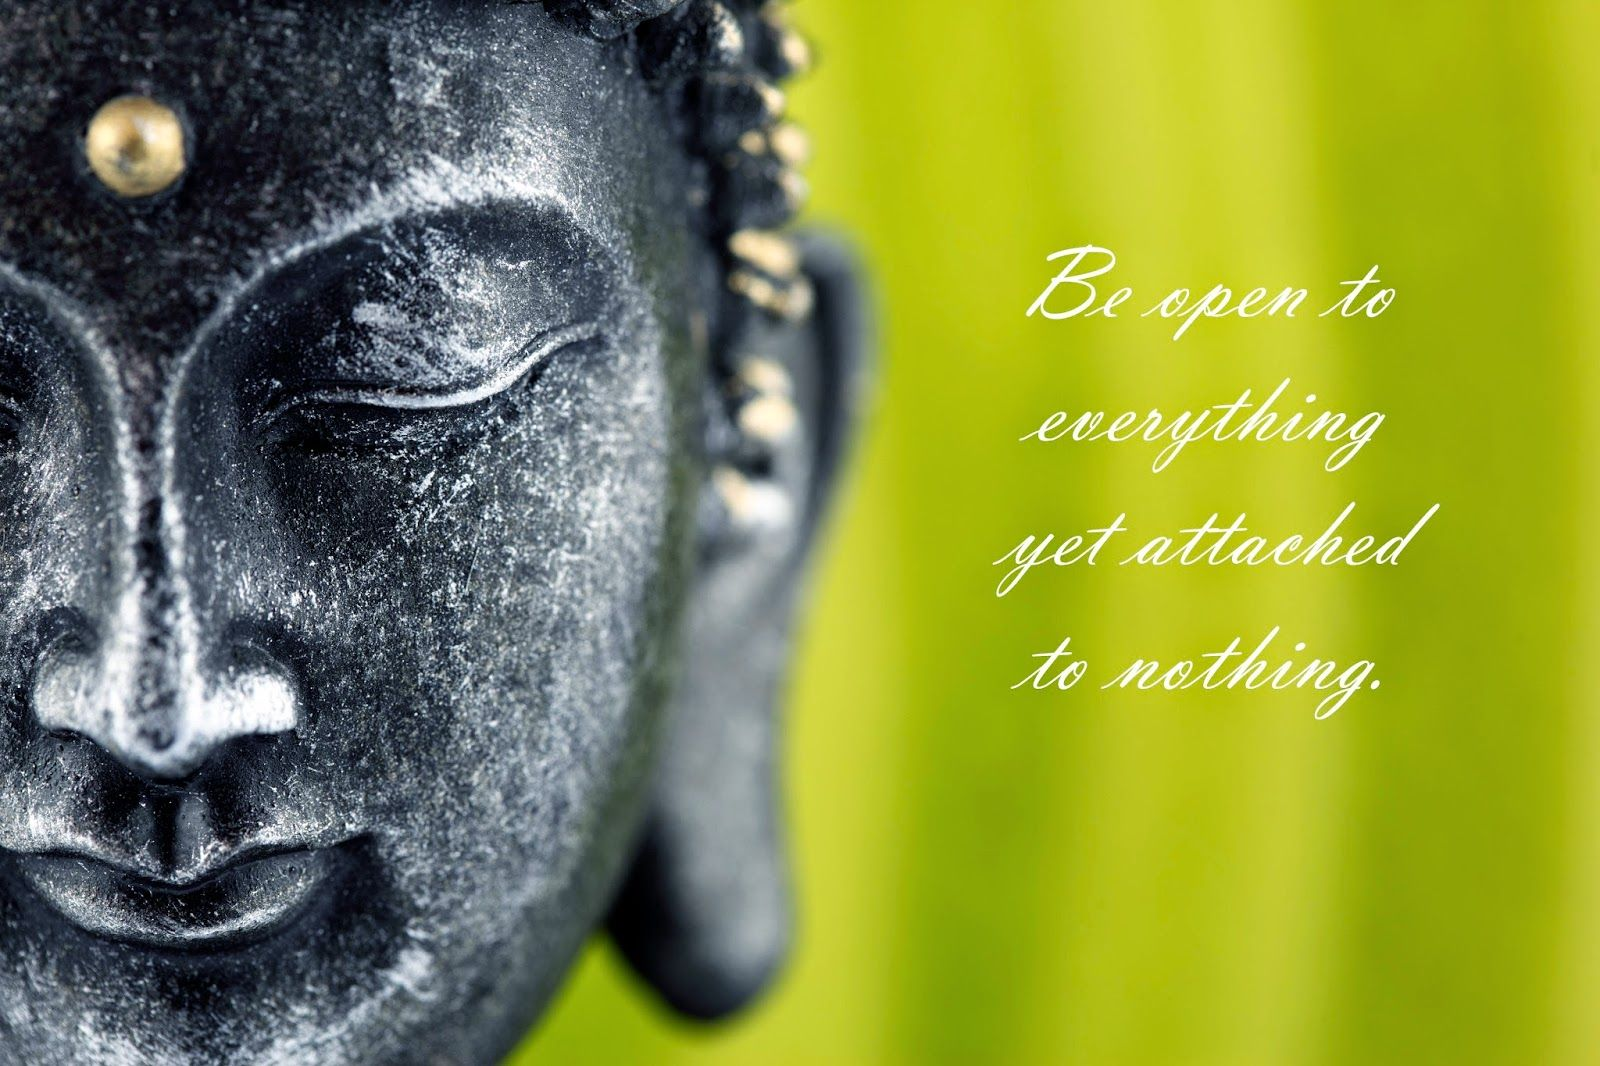 Buddha Quotes Hd Wallpapers In 2020 Buddha Thoughts Buddha Quote Buddhism Quote